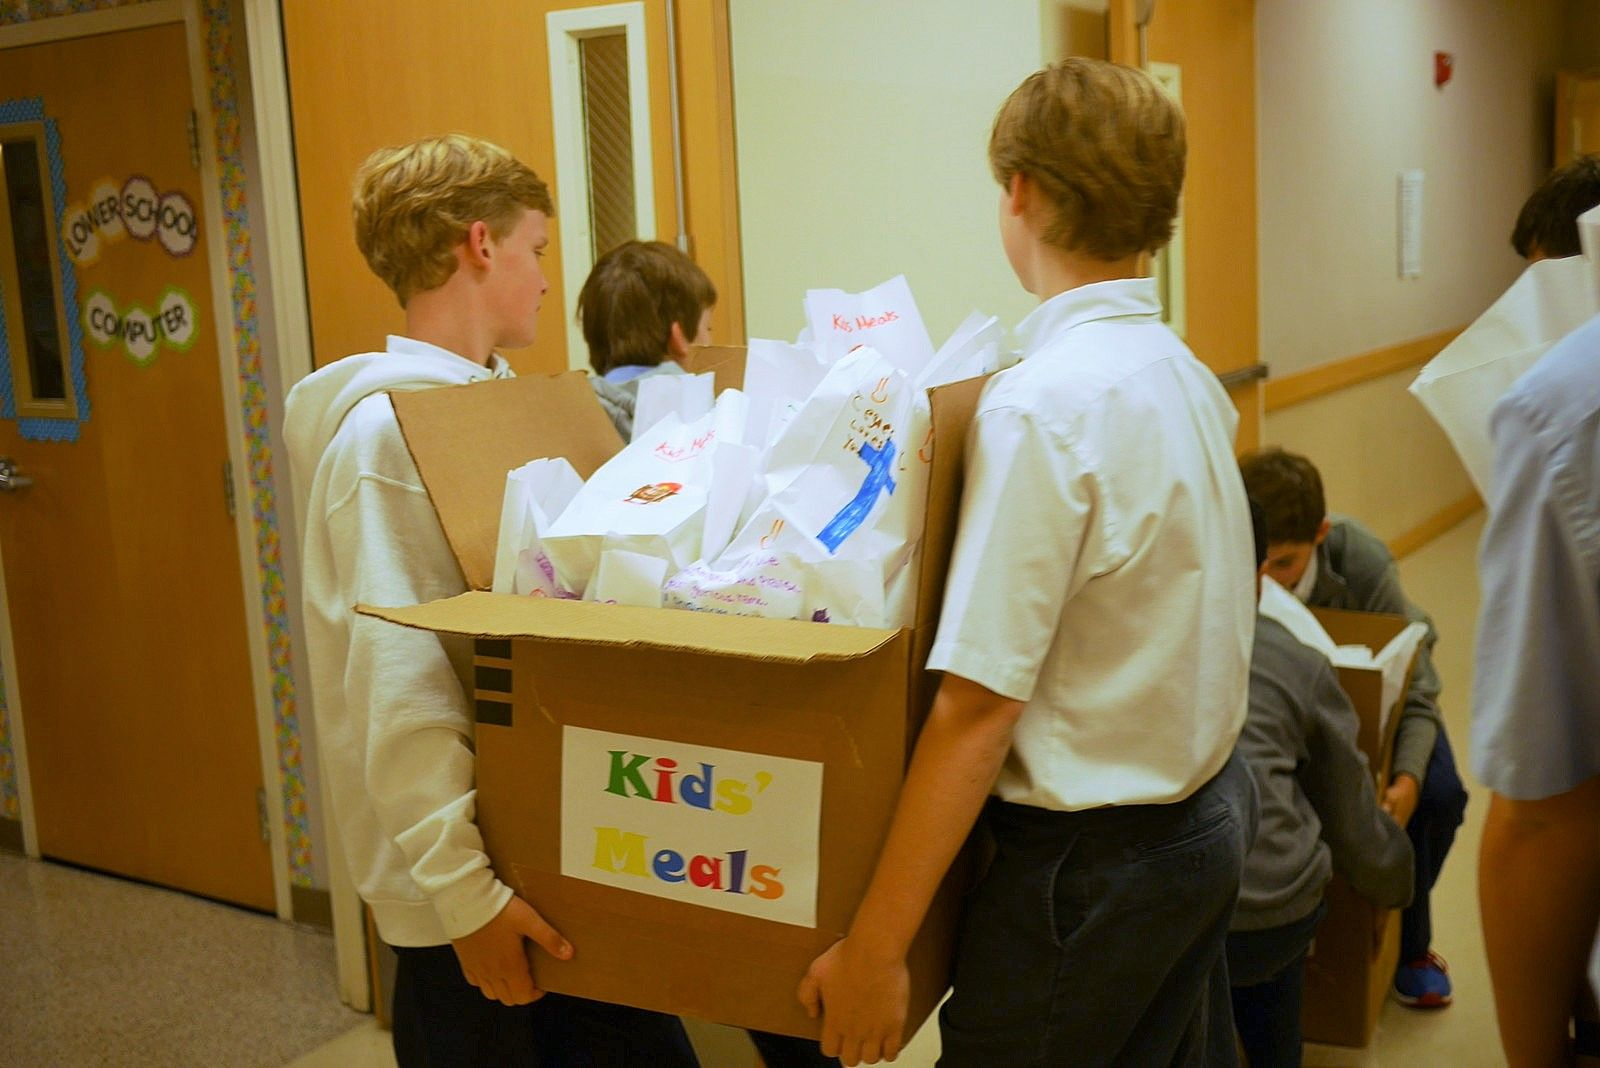 Shared service projects like making sack lunches for Kids Meals adds depth to the relationship between buddies.